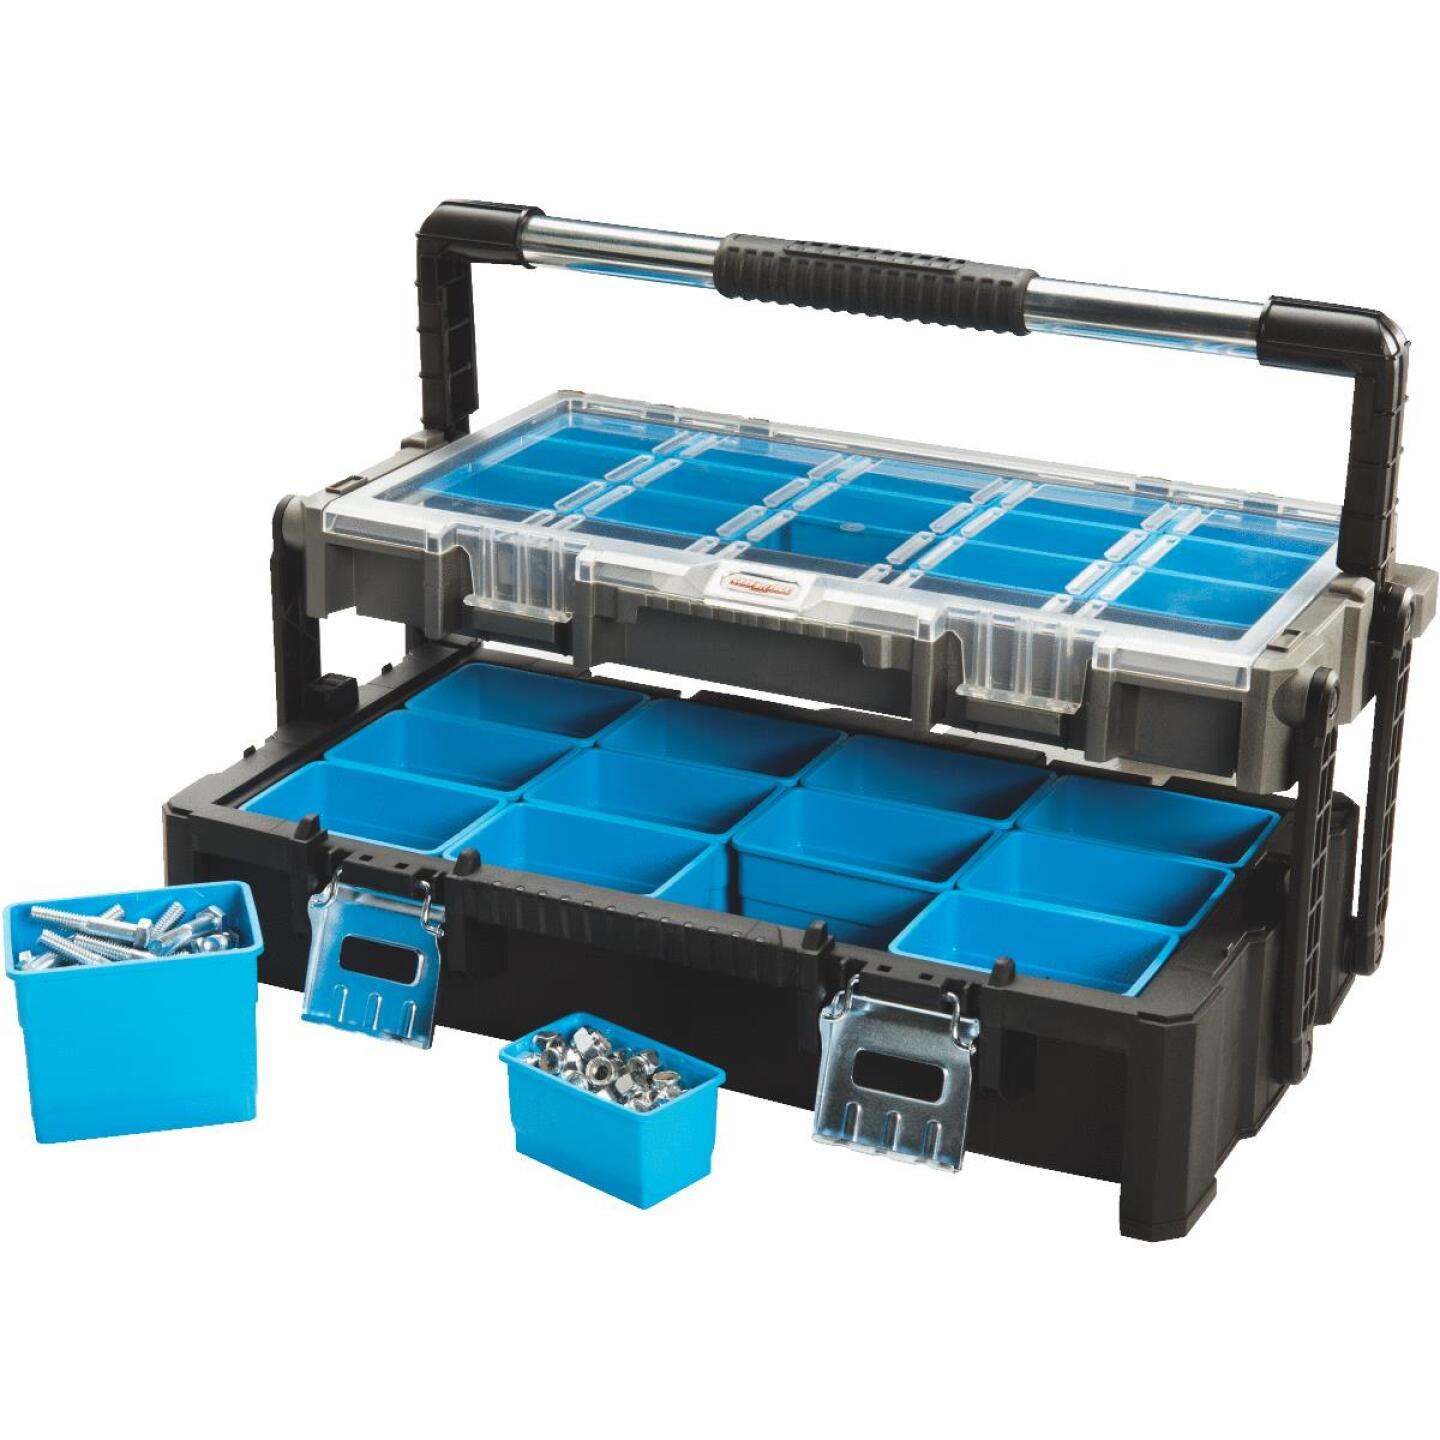 Channellock 22.5 In. Cantilever Parts Organizer Storage Box Image 4